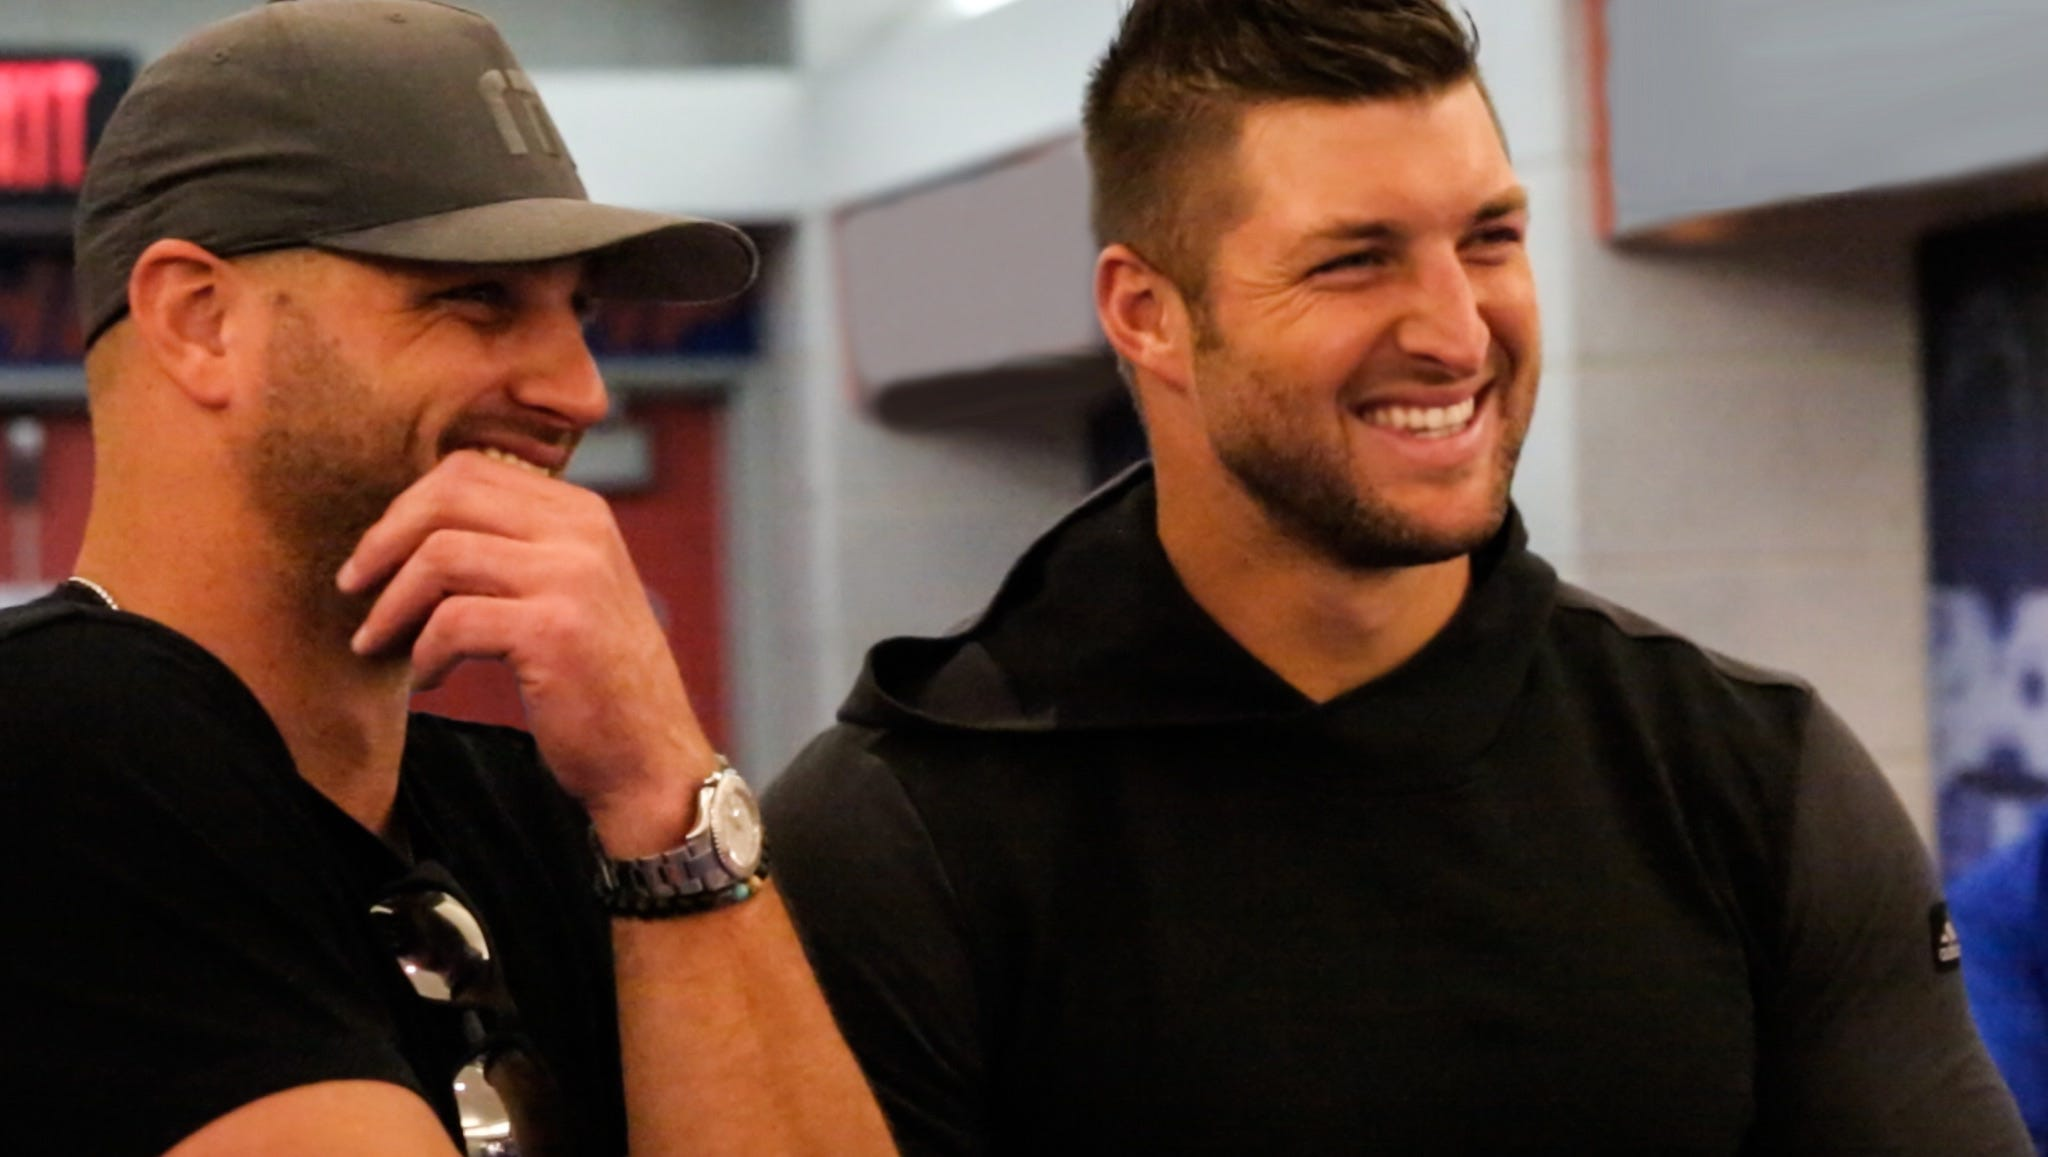 Tim Tebow: 27 real answers you have never heard before